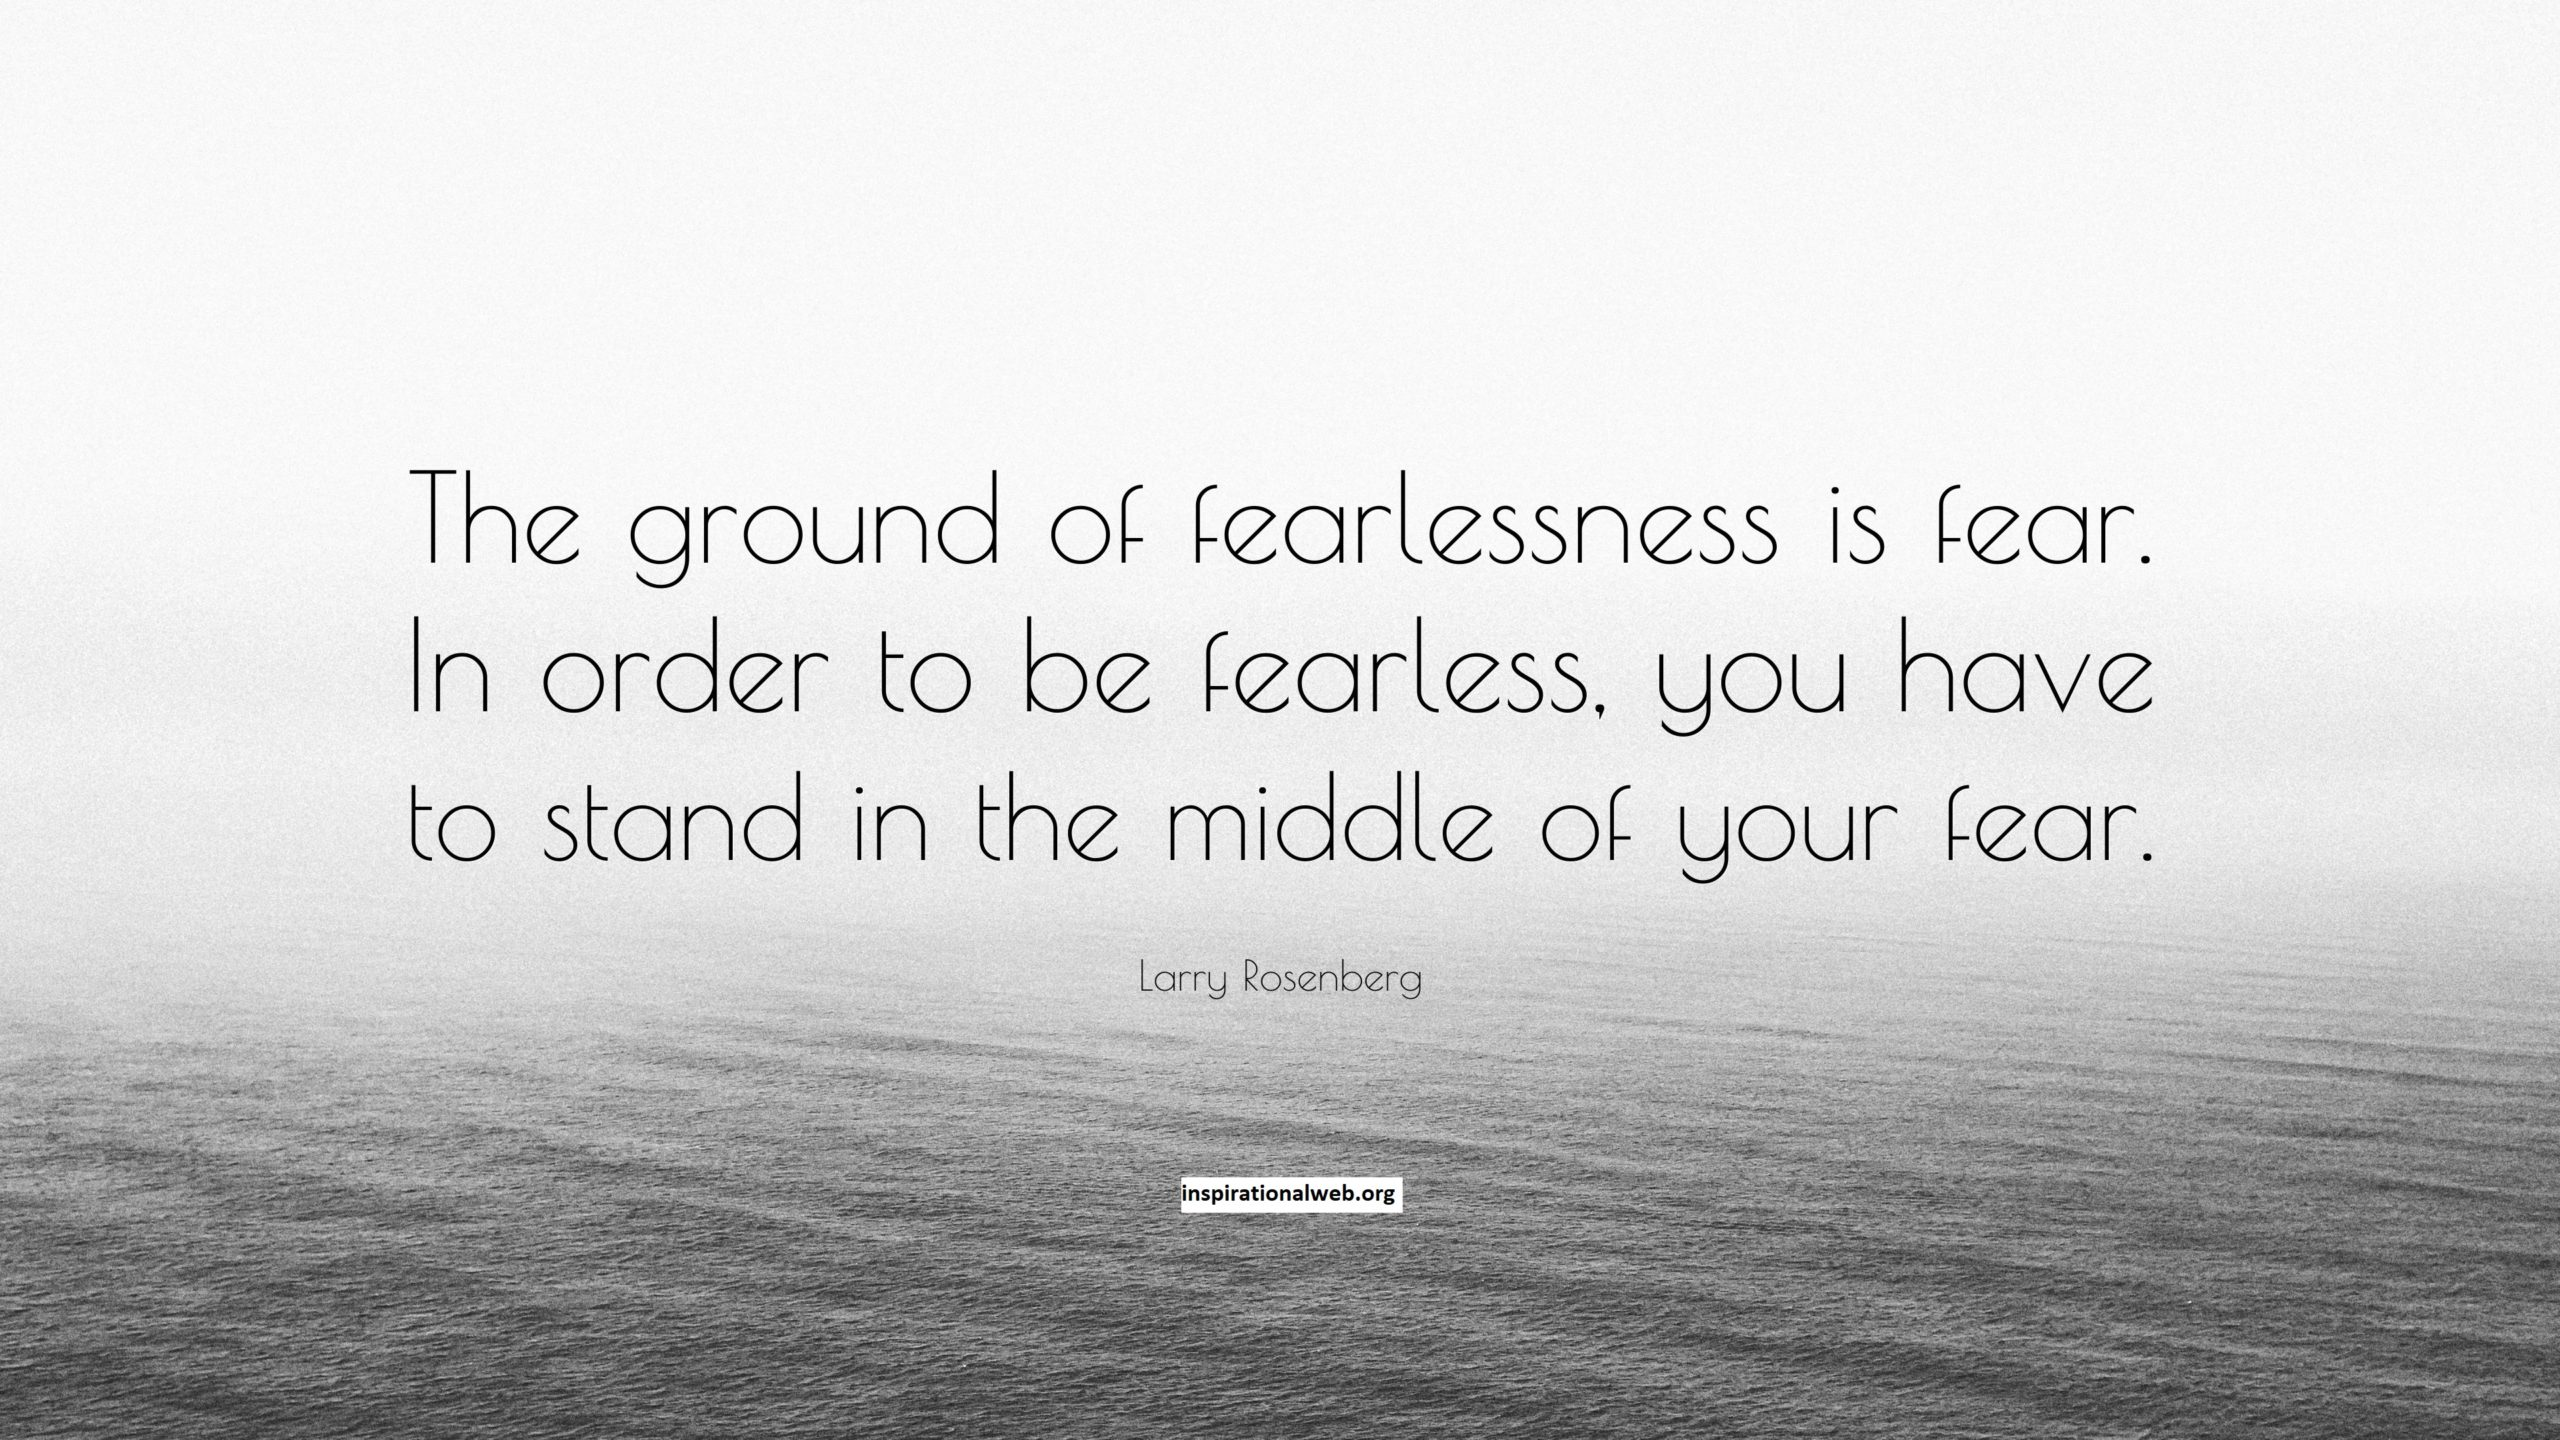 Fearlessness QuotesFearlessness Quotes